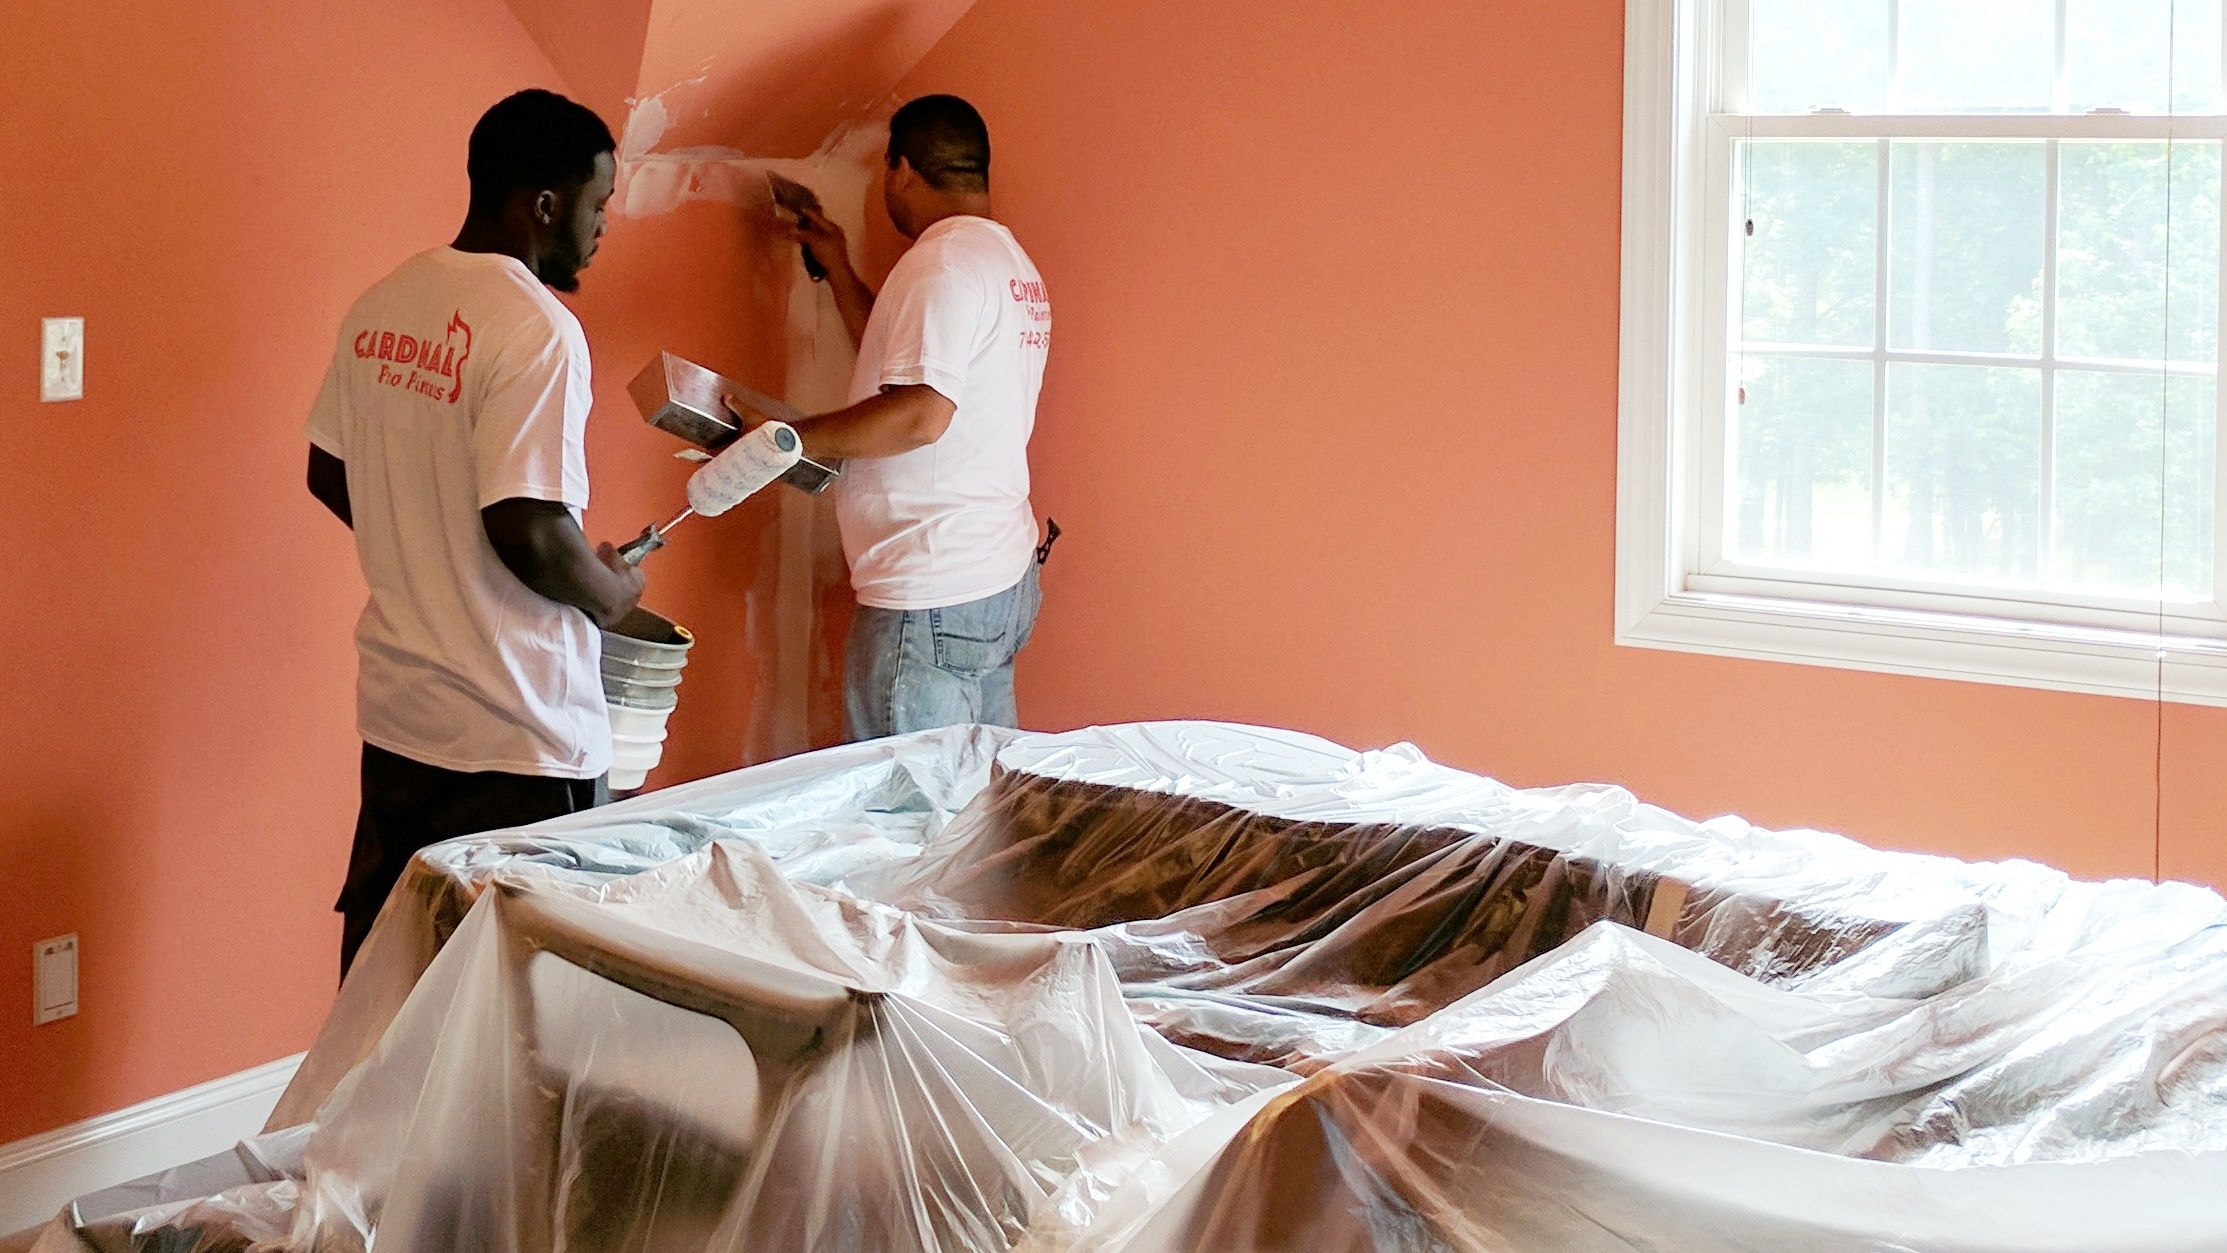 Merveilleux Interior Painting In Charlotte, NC With Cardinal Pro Painters  #InteriorPainting #PaintingContractor #Charlotte